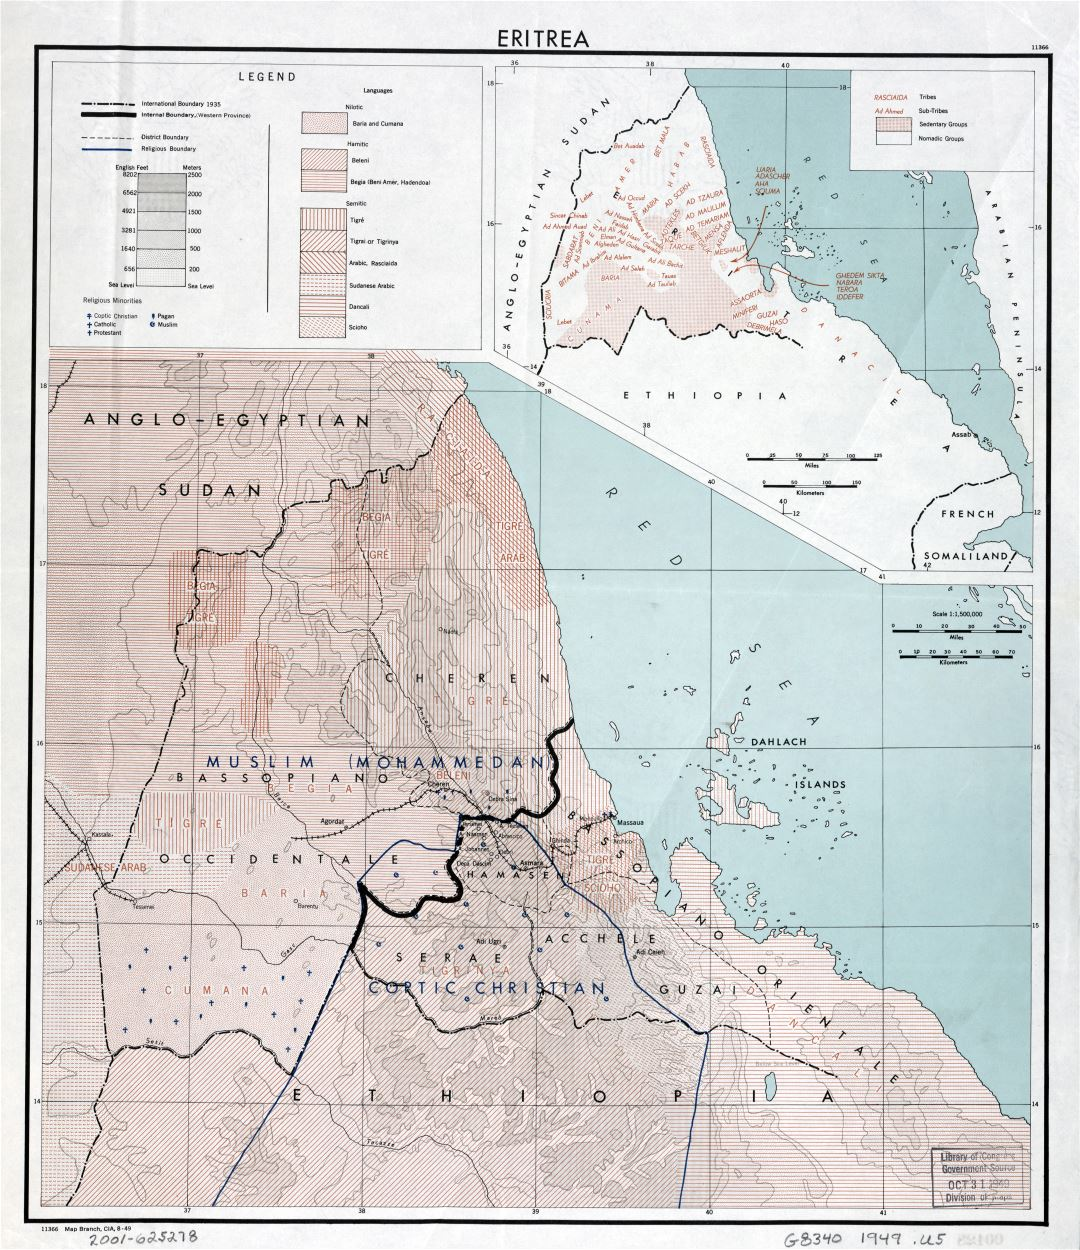 Large scale map of Eritrea - 1949